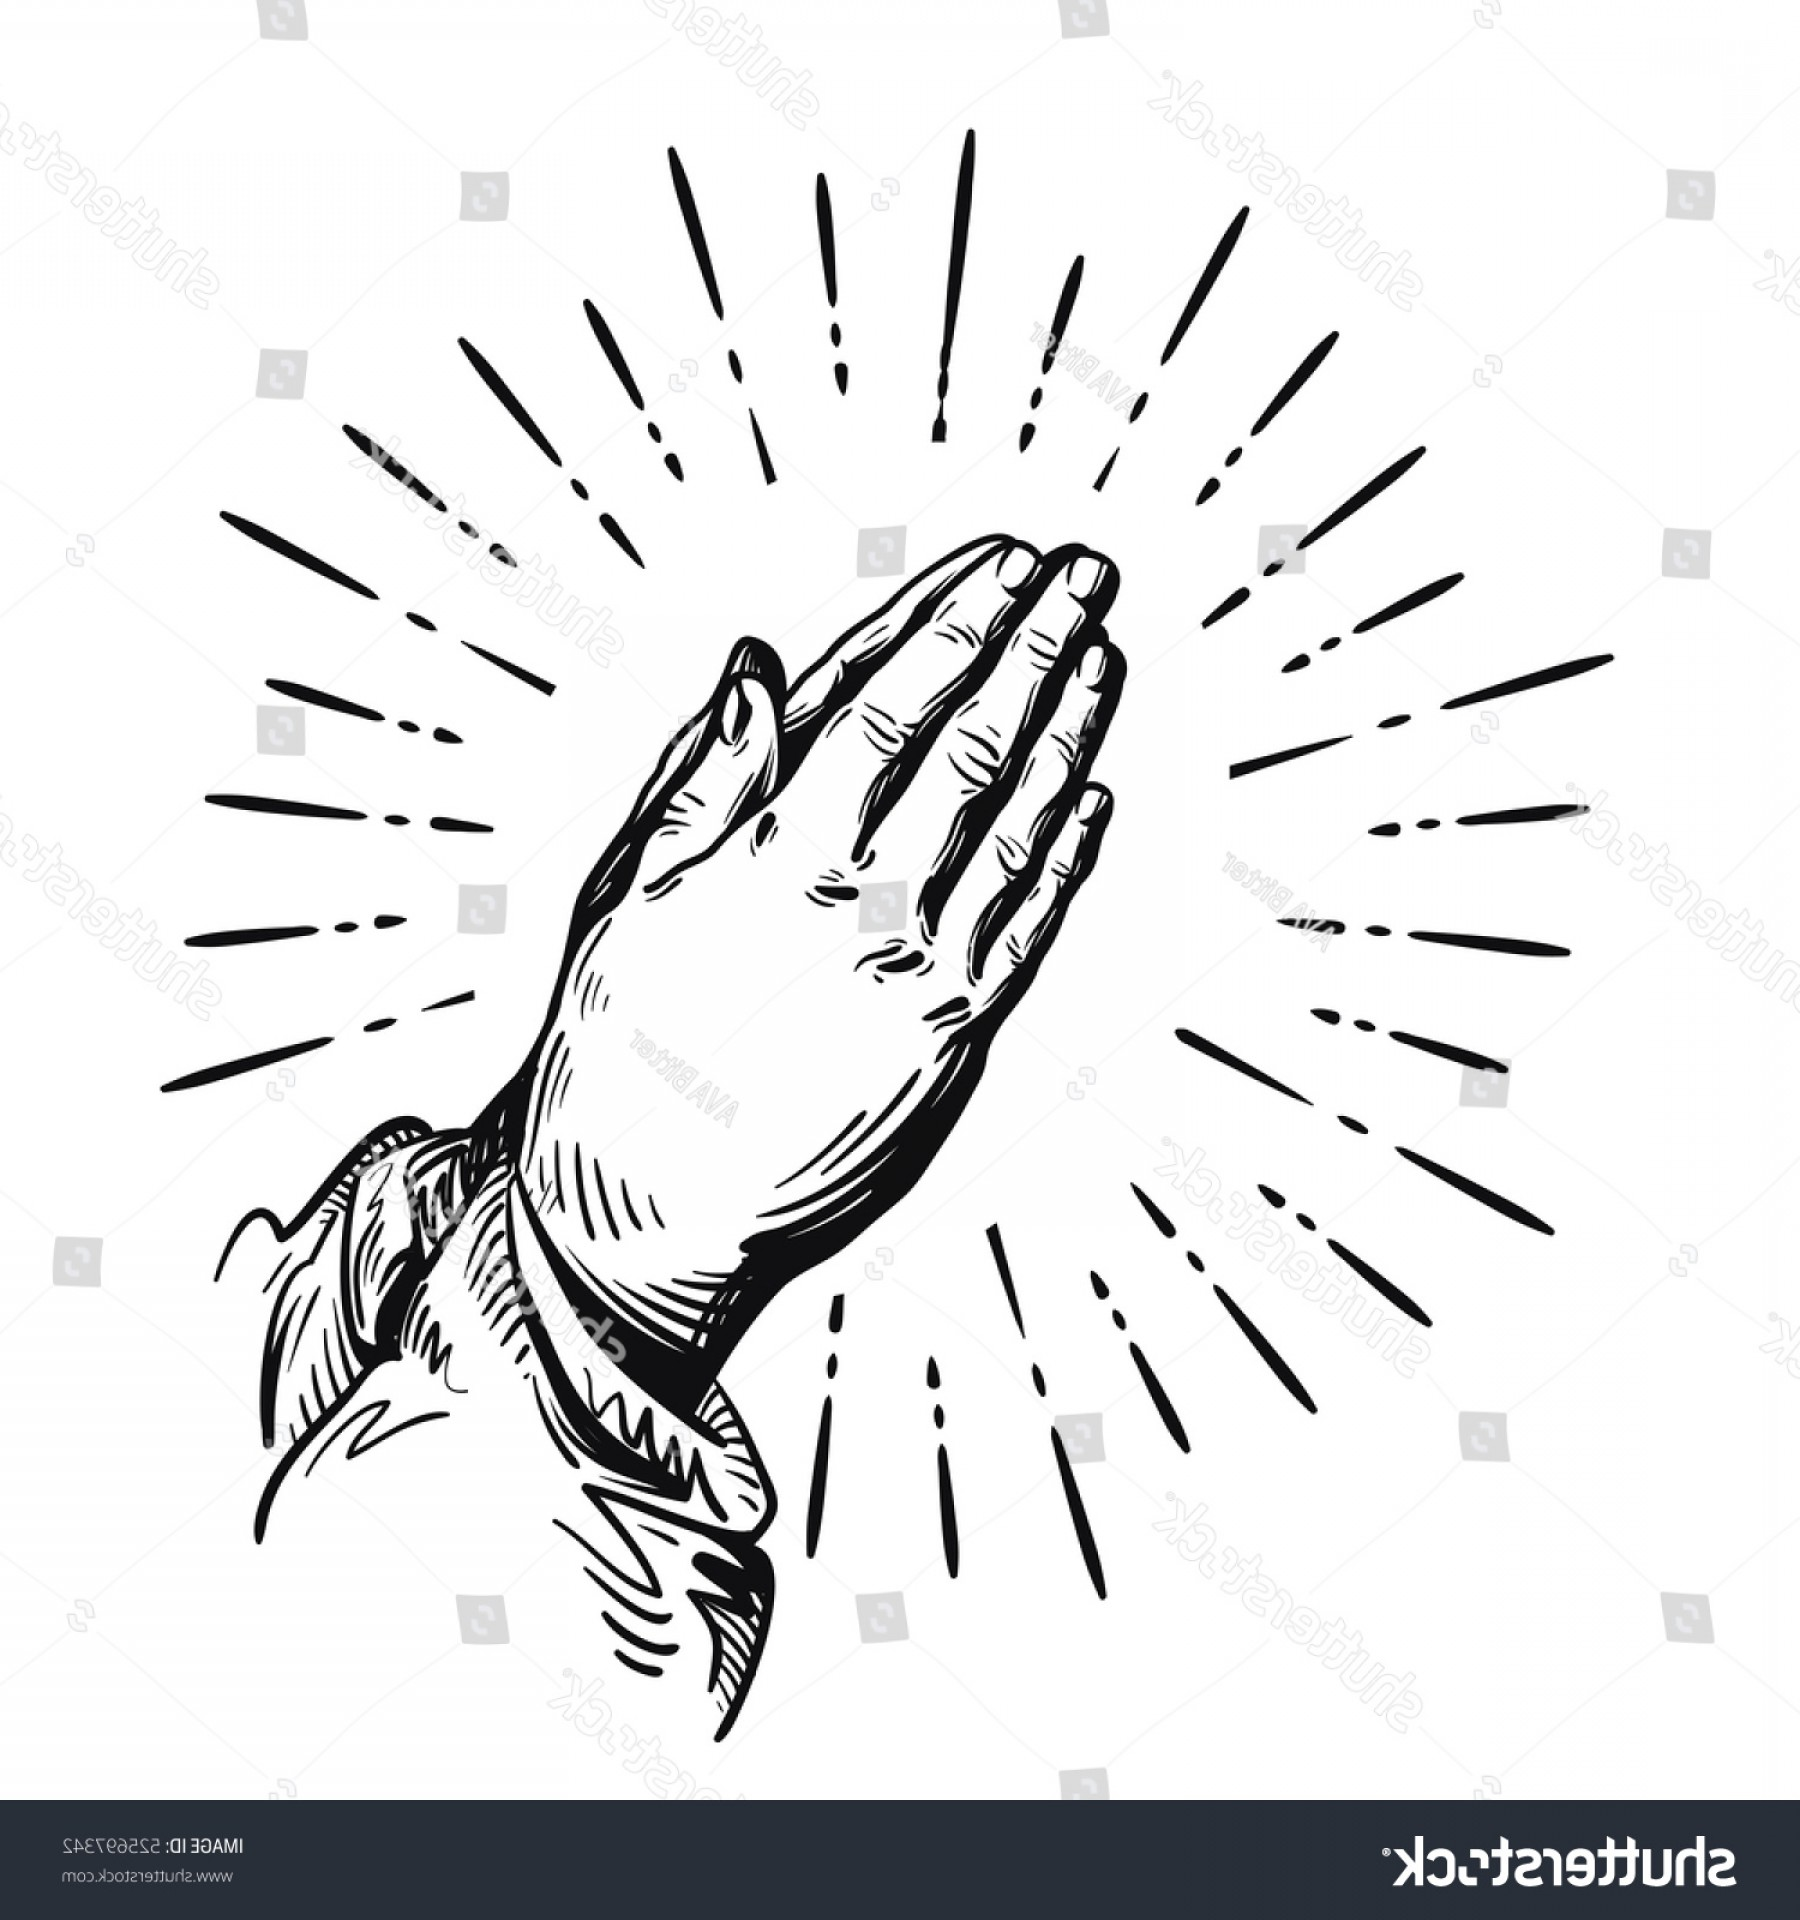 Praying Hands Vectors Shutterstock: Prayer Sketch Praying Hands Vector Illustration